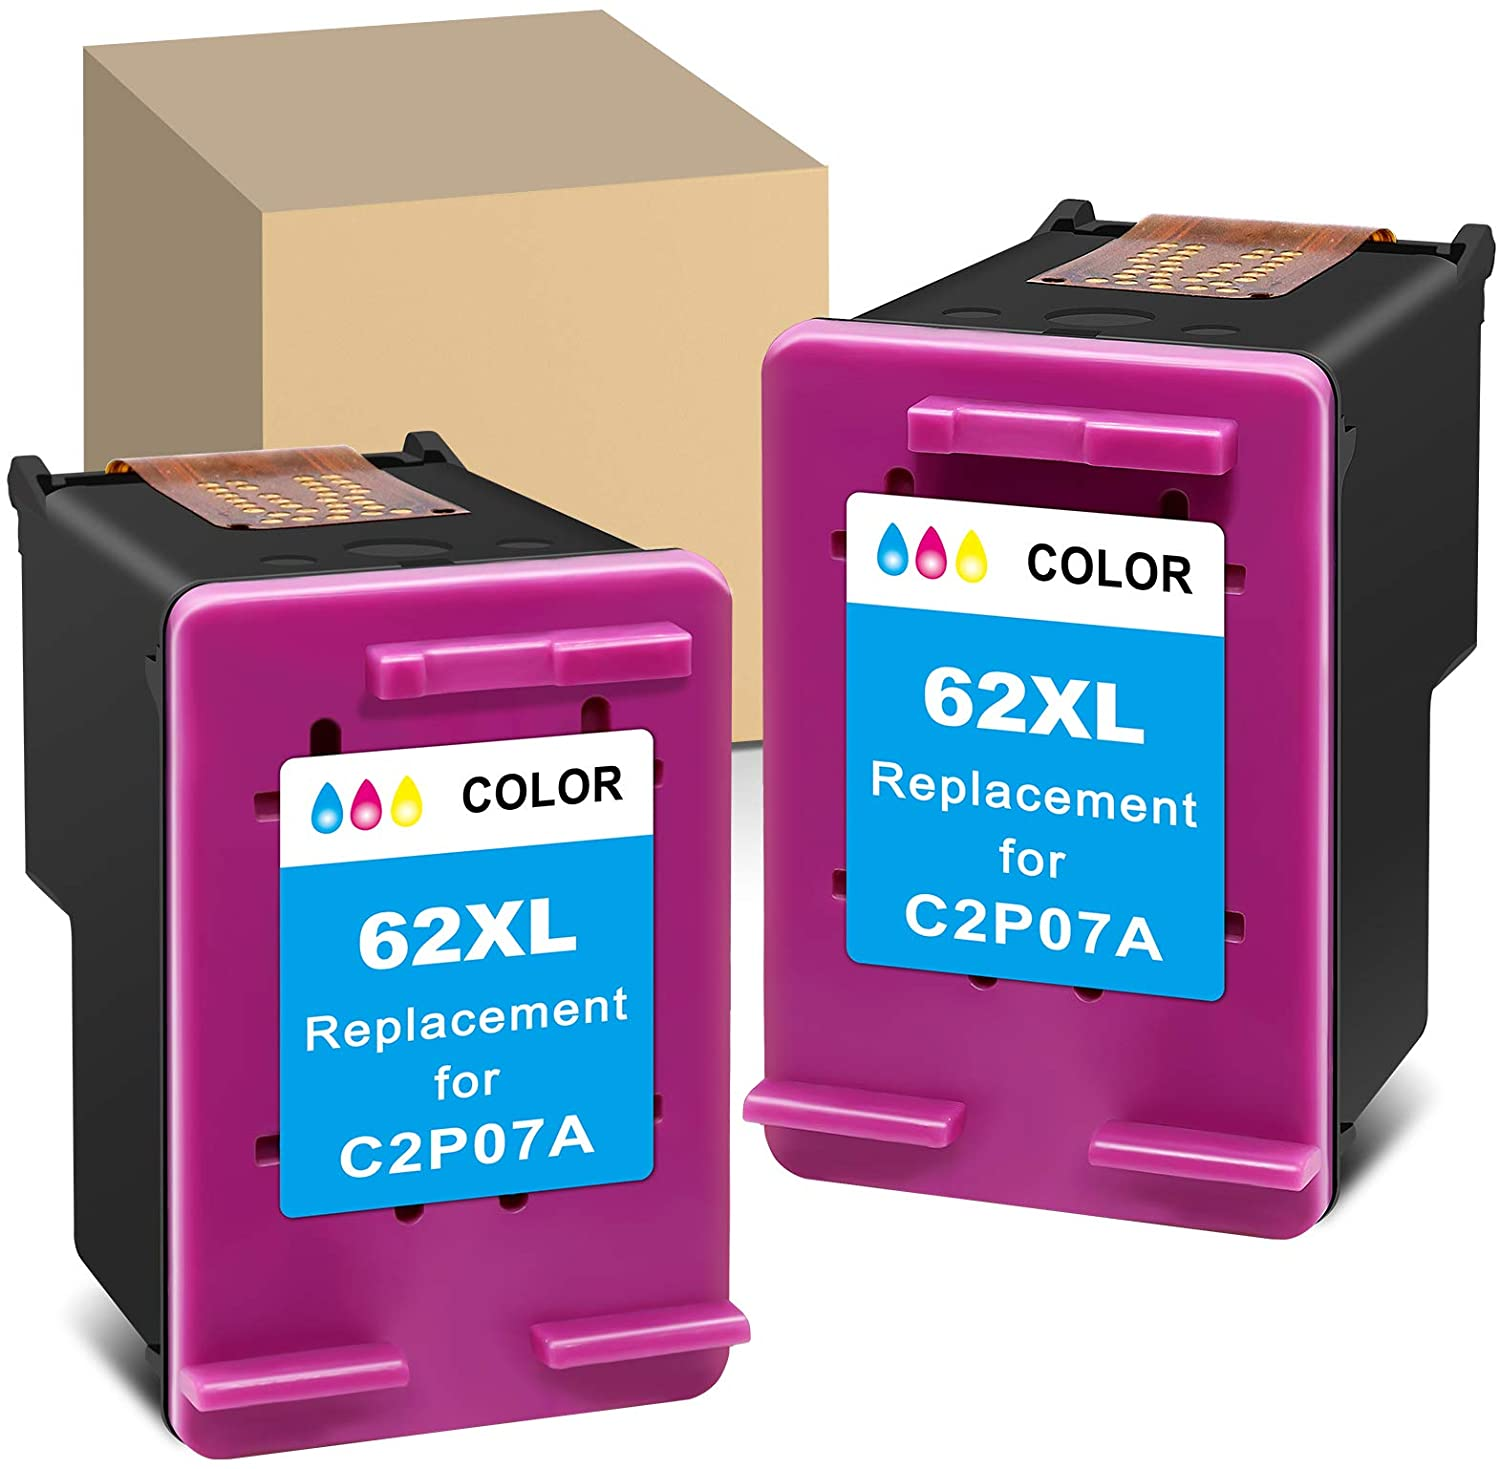 ATOPolyjet Remanufactured 62XL Ink Cartridge Replacement for HP 62 XL Used for Envy 7640 7645 5660 5540 5661 5640 5549 5663 OfficeJet 5740 250 200 5746 5745 Printer (2 Color, 2 Pack)